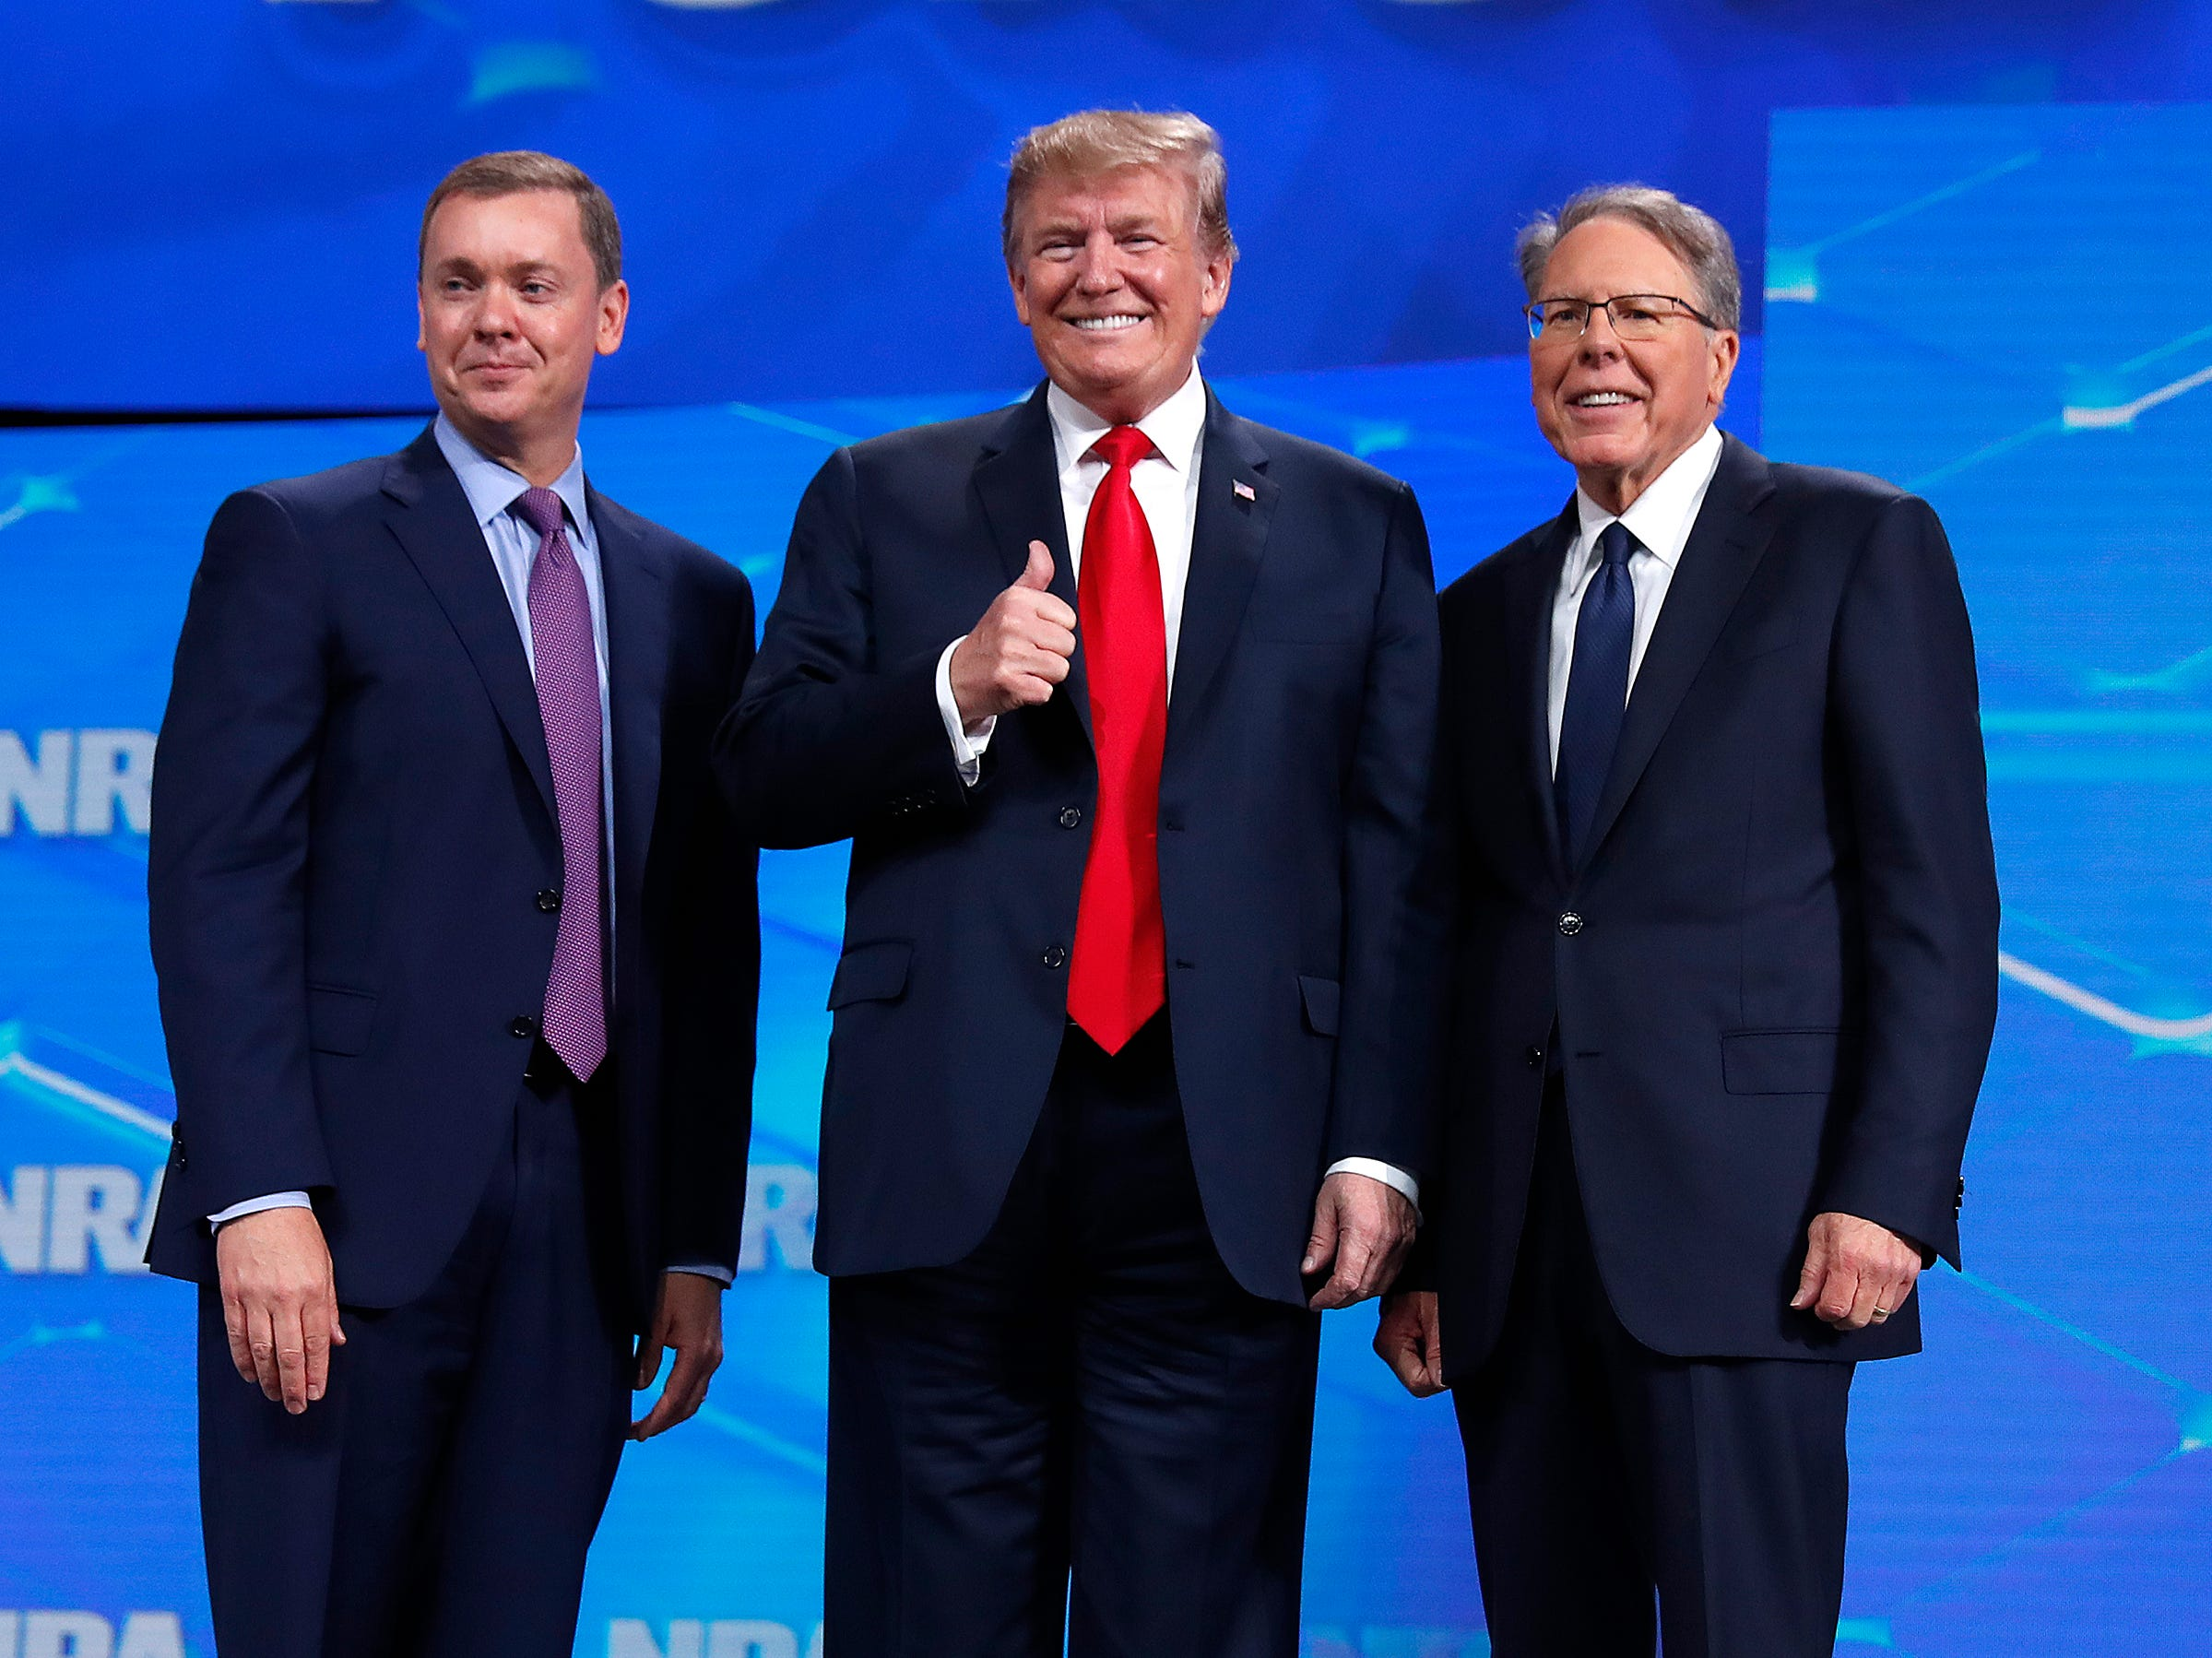 President Donald Trump with Chris Cox, Executive Director of the National Rifle Association's Institute for Legislative Action, right, and Wayne LaPierre, Executive Vice President and Chief Executive Officer of the NRA, left. President Trump addressed the National Rifle Association Institute for Legislative Action Leadership Forum, Friday, April 26, 2019, at Lucas Oil Stadium in Indianapolis. The forum is part of the 148th NRA annual meetings and exhibits in Indianapolis.